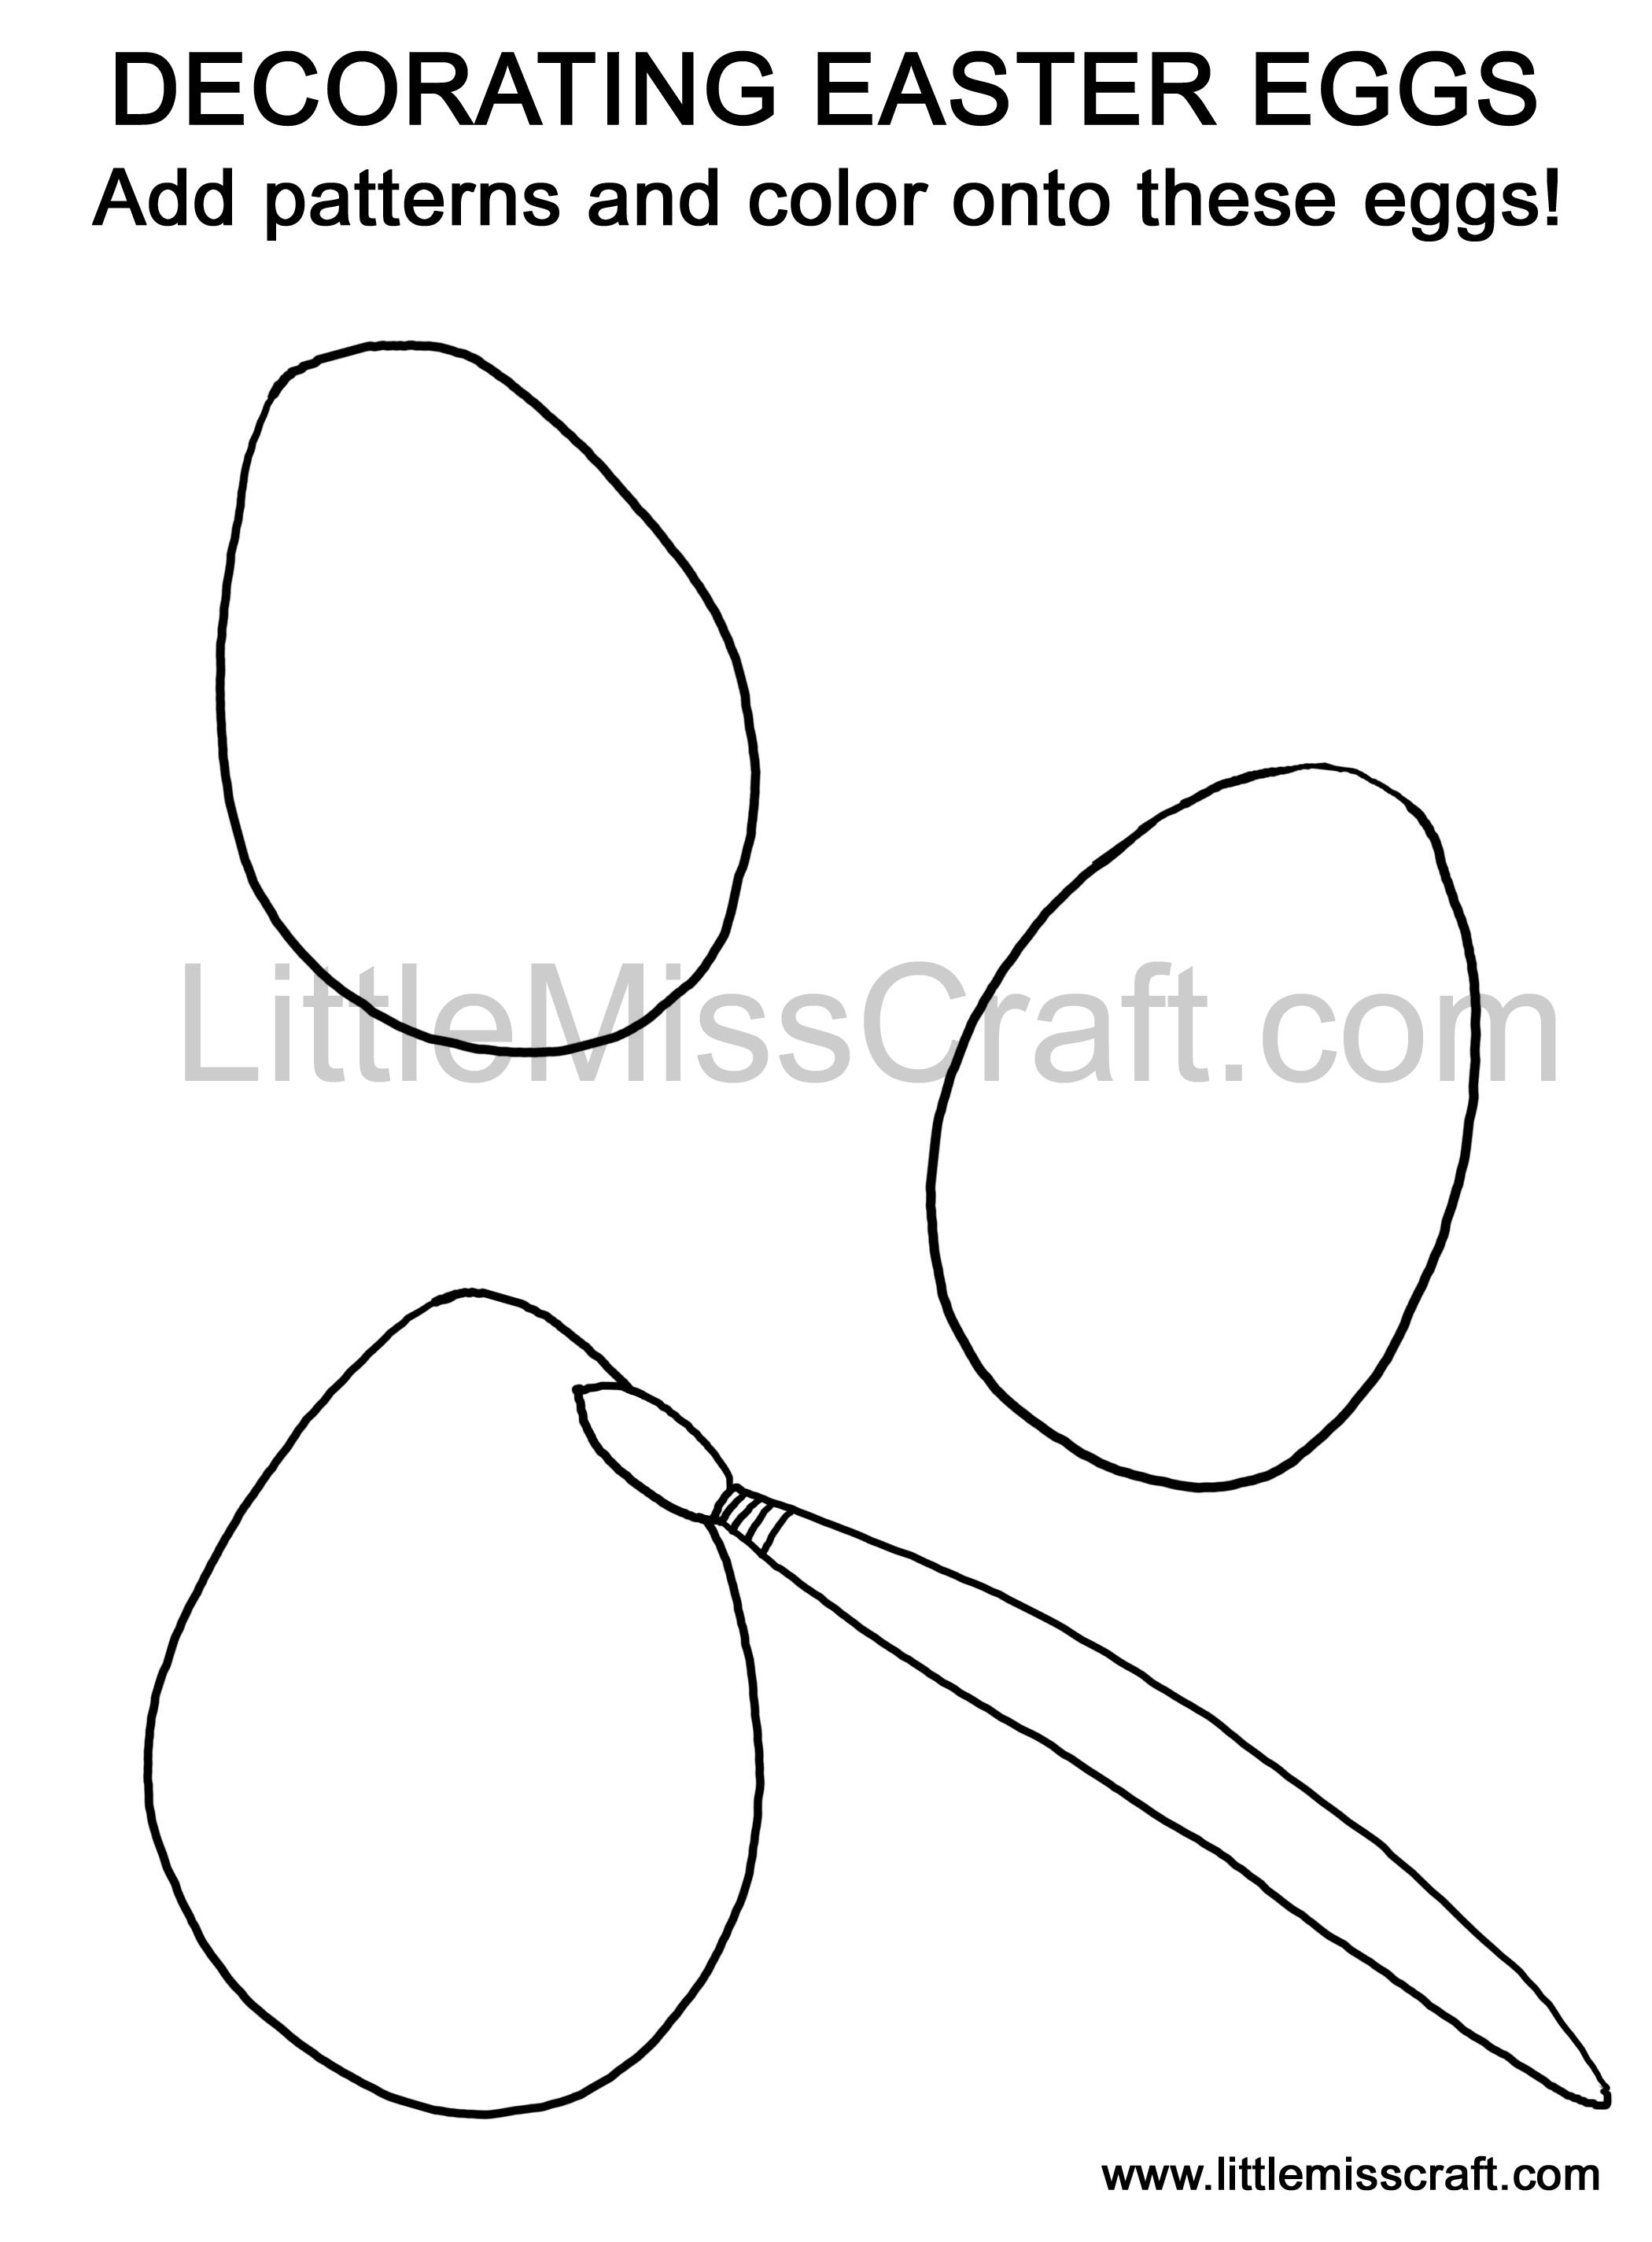 Easter eggs chicks easter egg hunt draw coloring doodle printable pages